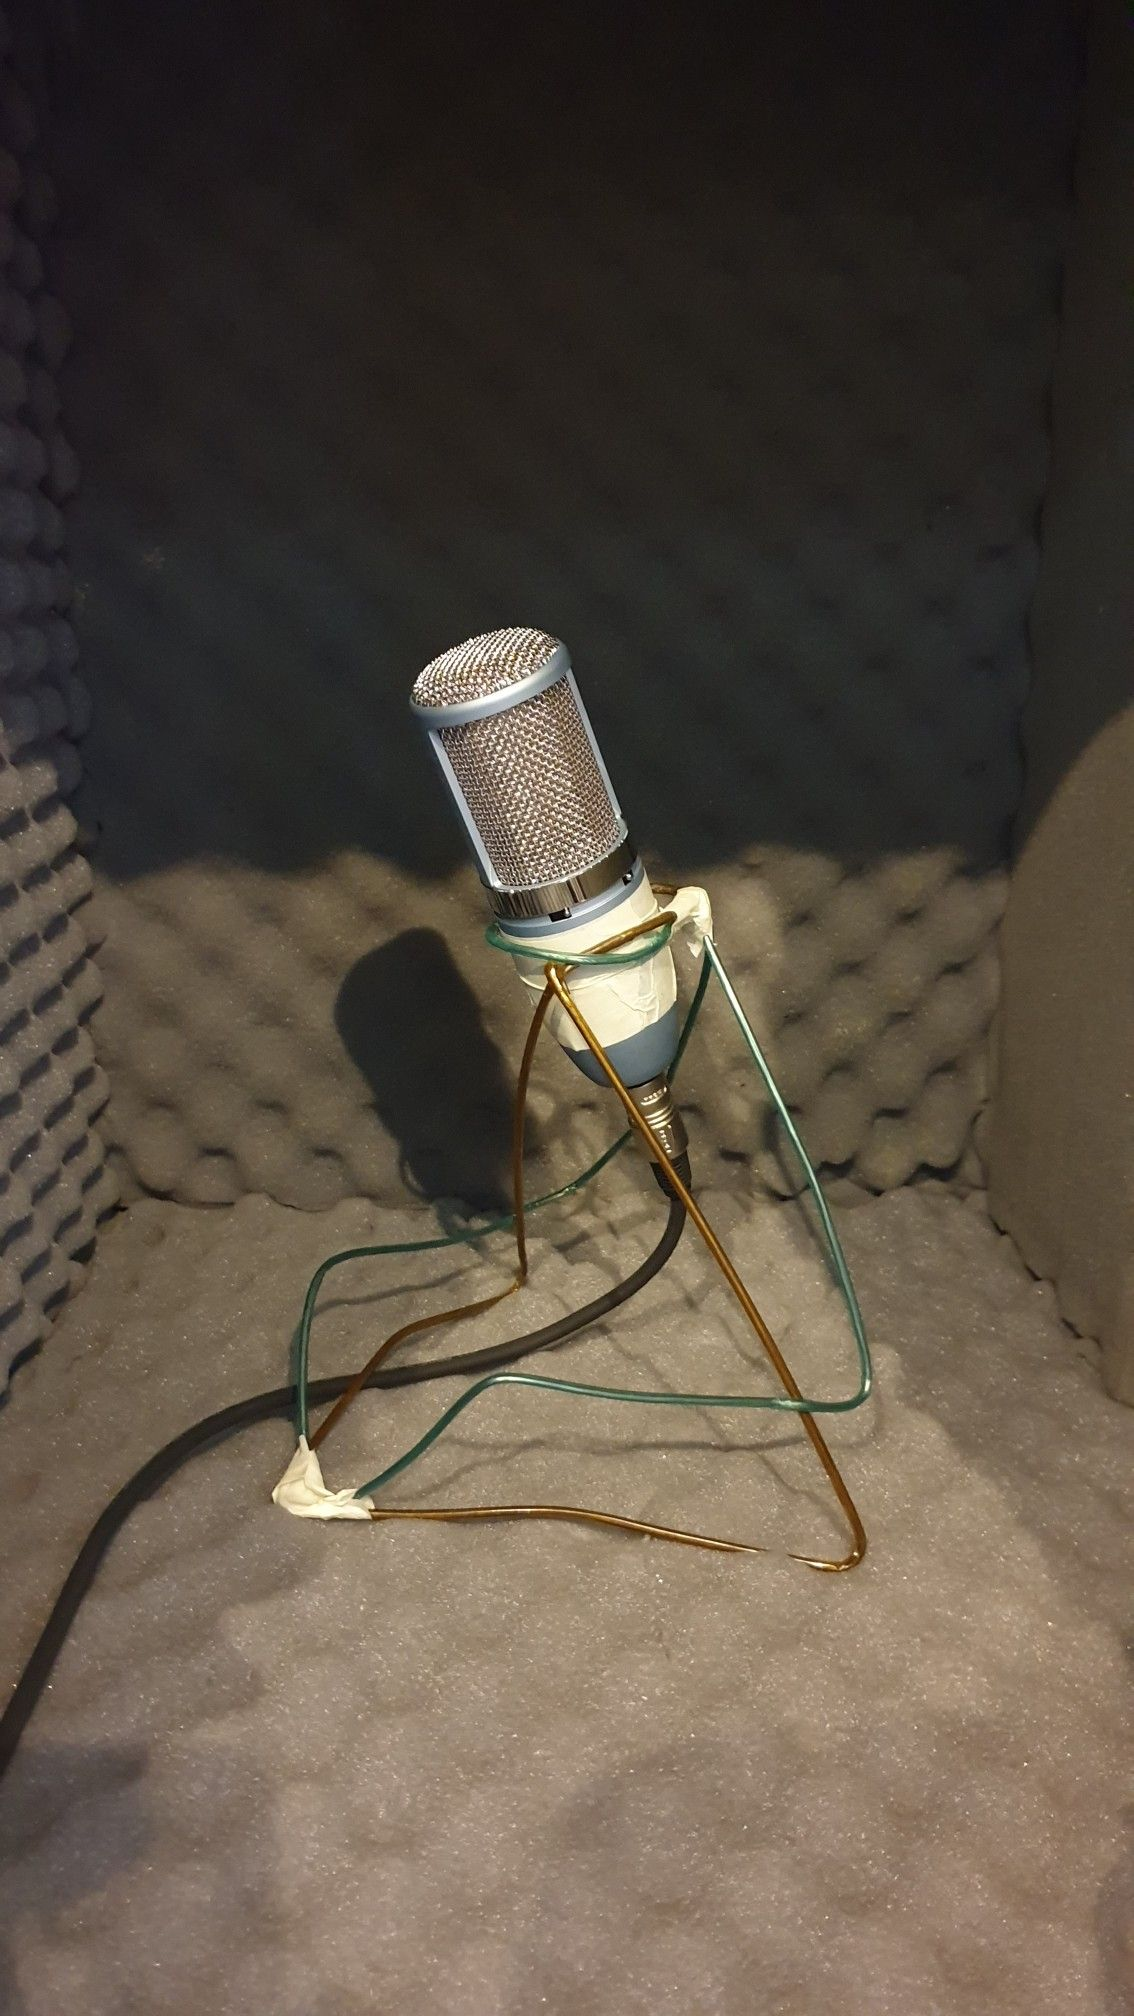 Diy Mic Desk Stand Which Is Made Of 2 Metal Hangers It Is Much Stable For Somehow Heavy Mics In 2020 Metal Hangers Electronic Products Recording Microphone